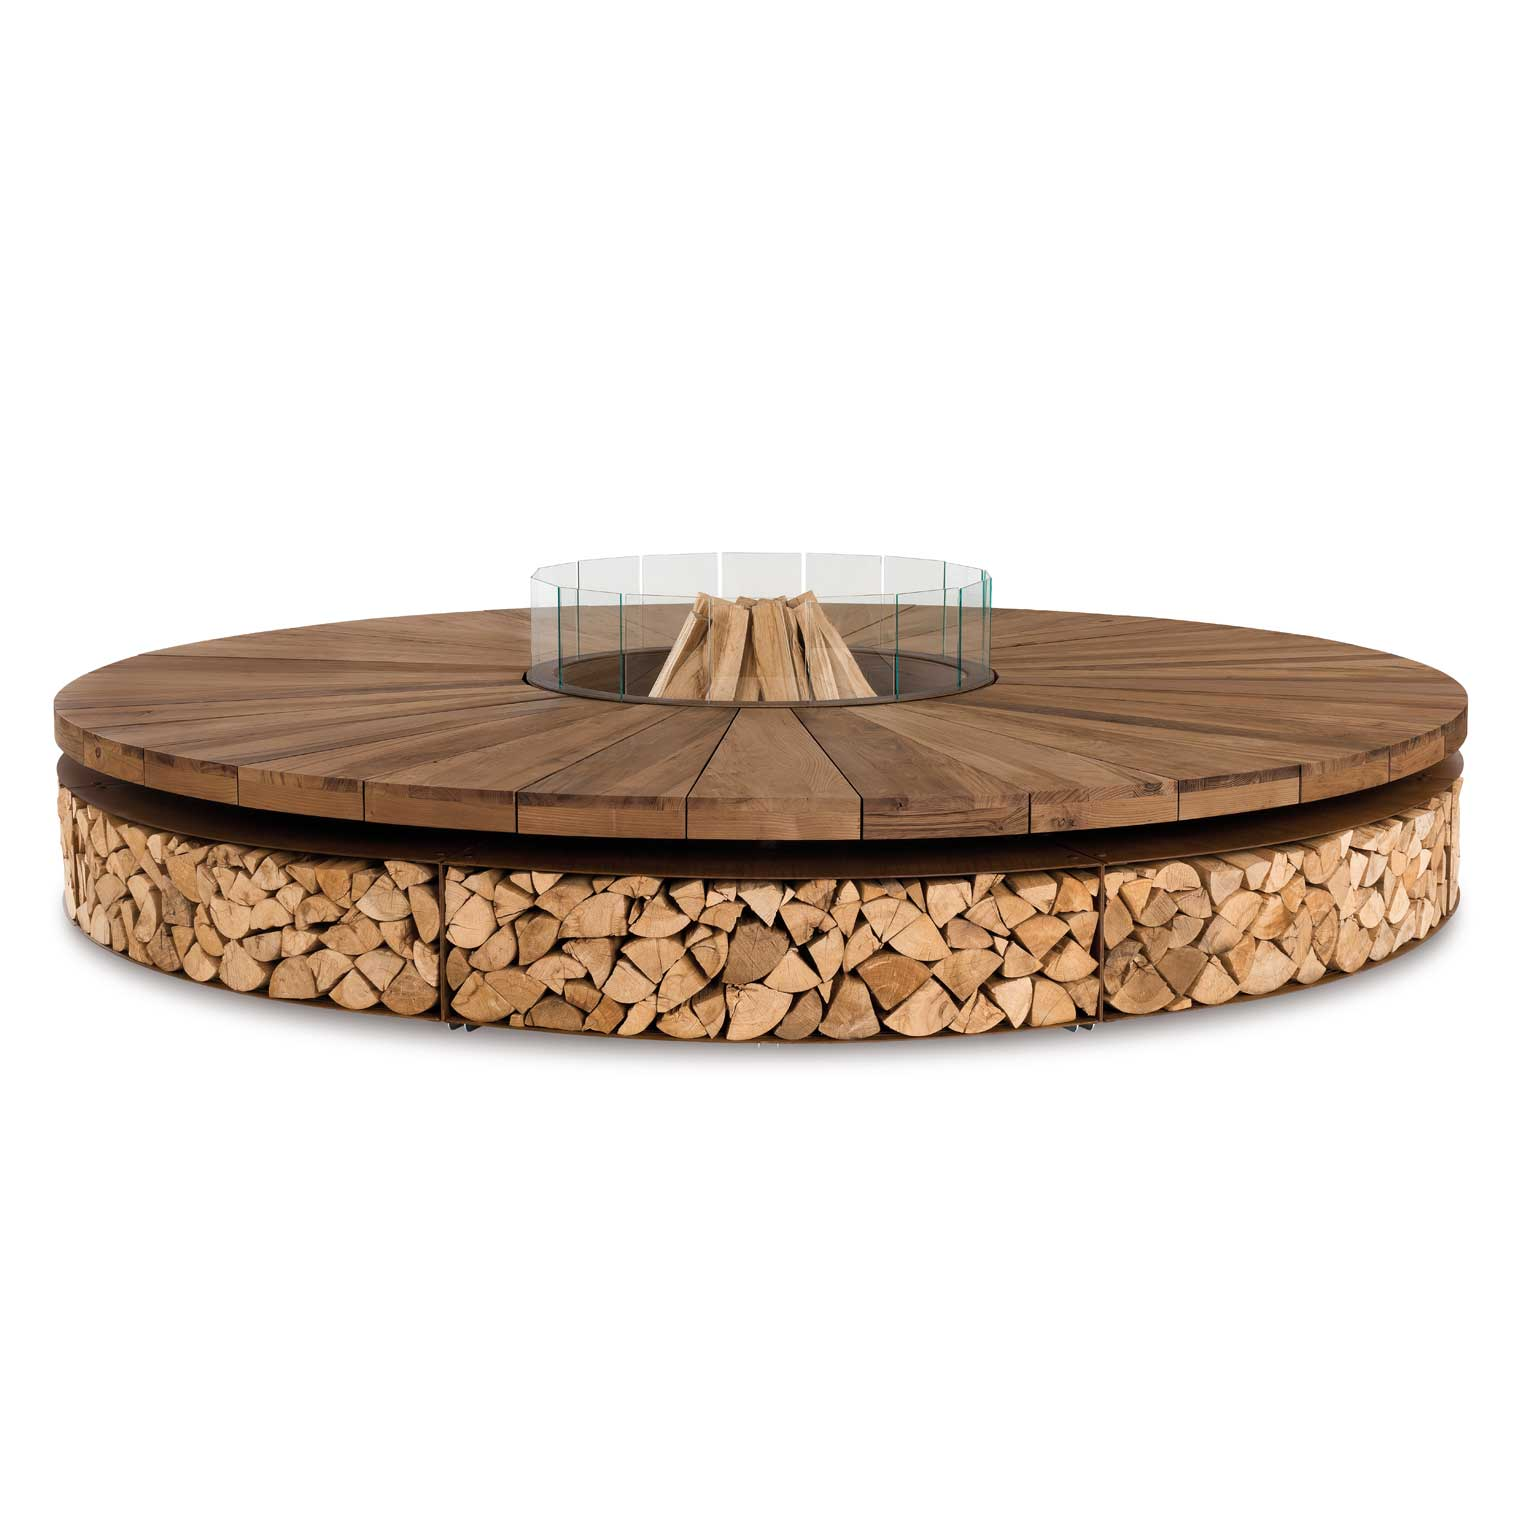 Outdoor Firepit Artu' by AK47